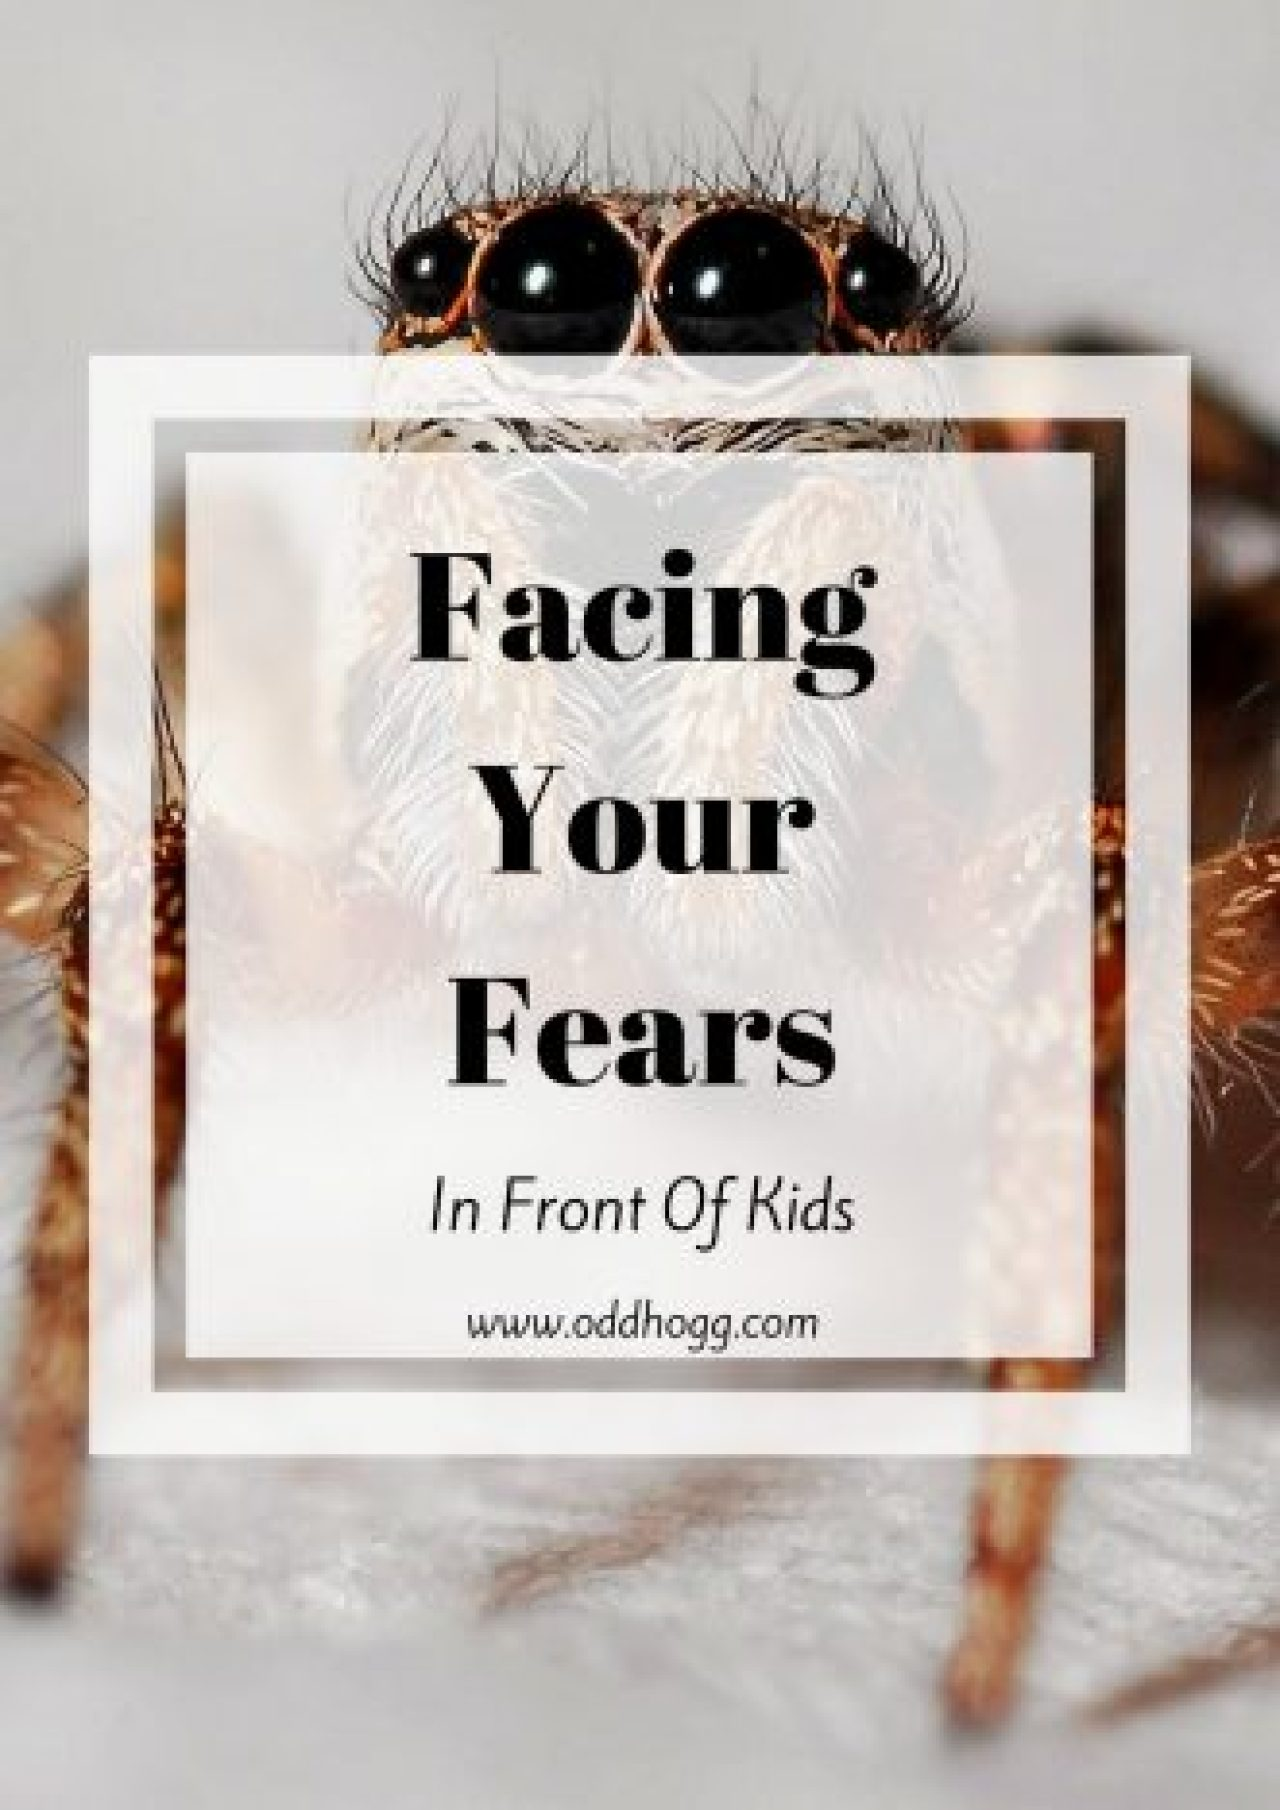 Facing Your Fears In Front Of Kids | We've all had that moment where we're terrified of something and want to run screaming. I'm trying to reign it in in front of my son but it is tough when you're scared! http://oddhogg.com